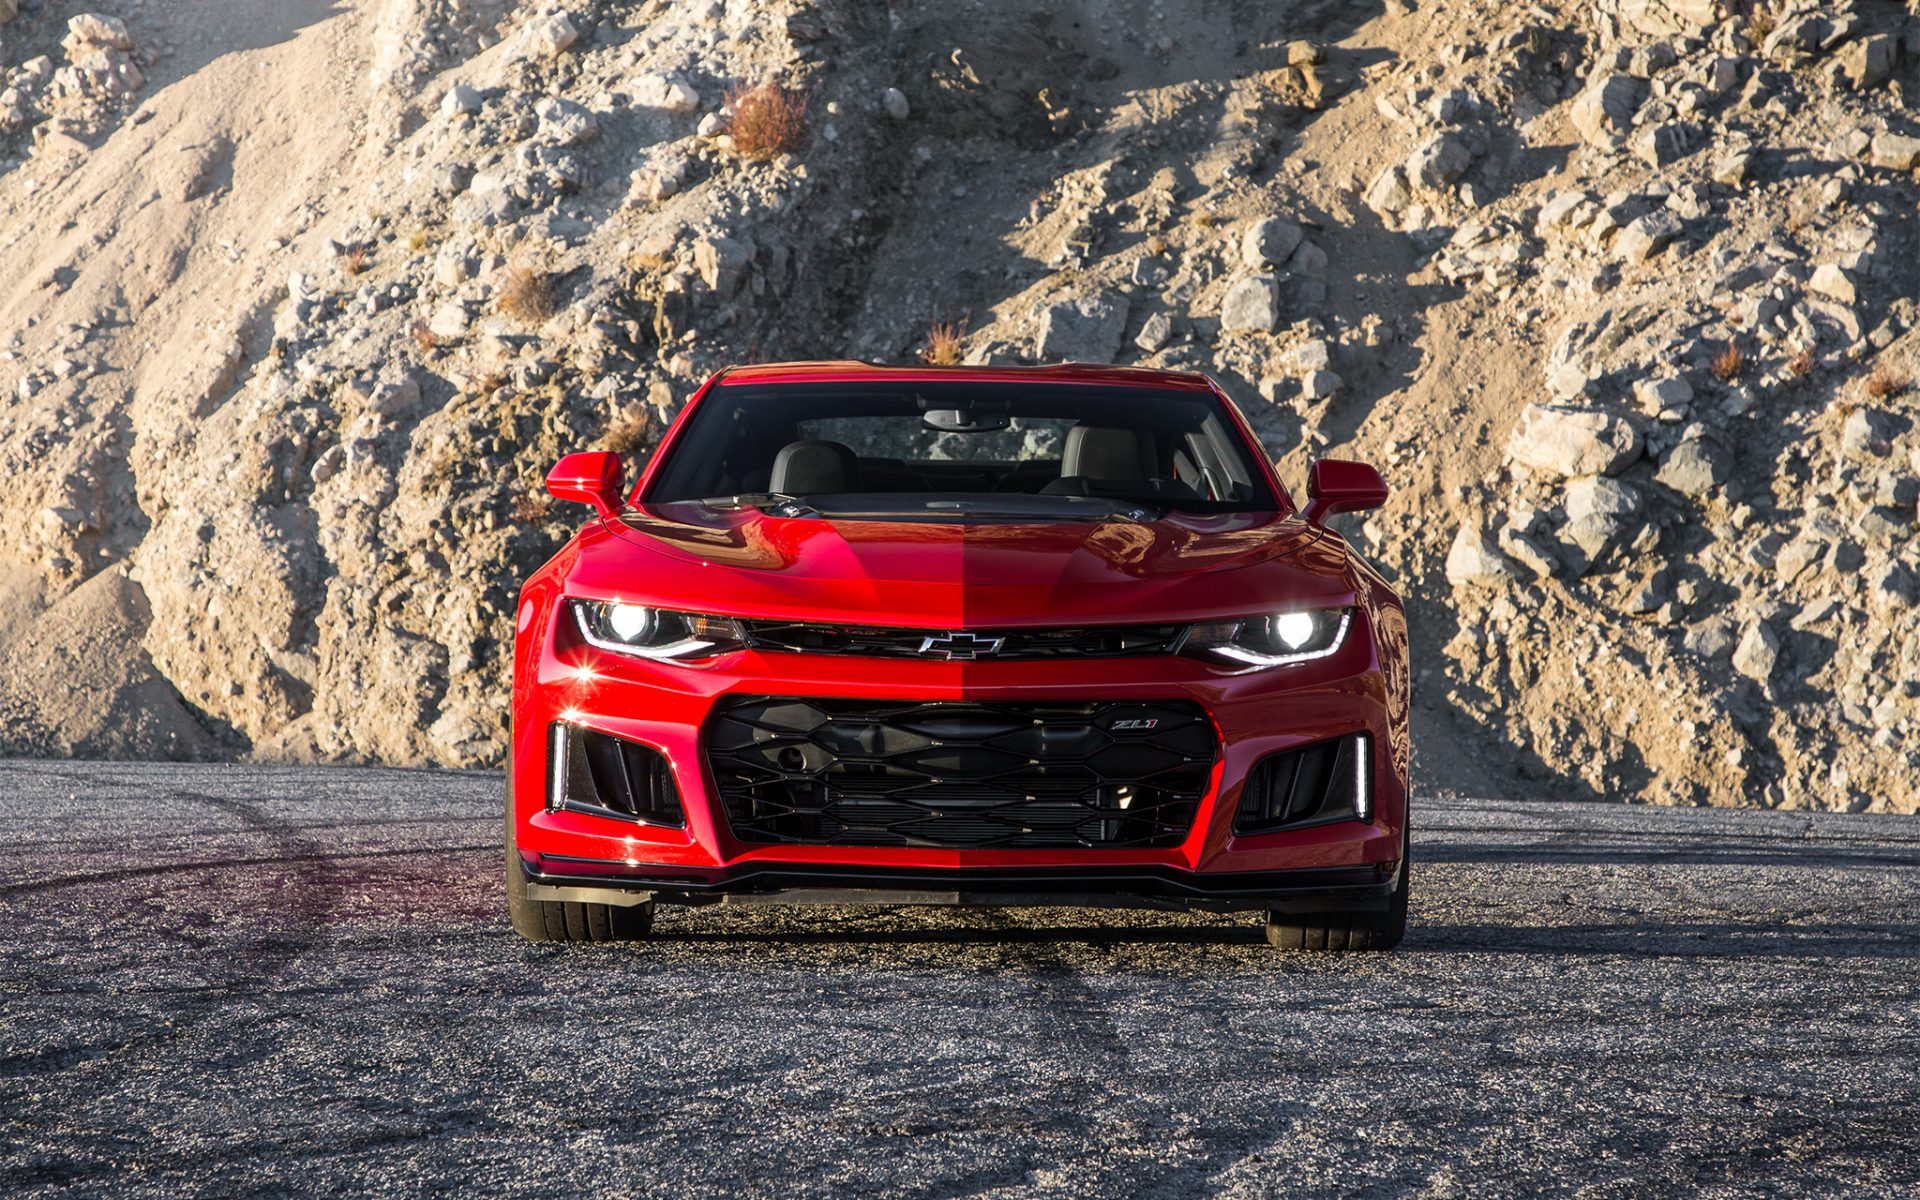 2017 chevrolet camaro zl1 red wallpaper hd wallpaper background mobile vga 240x320 480x640 320x240 640x480 600x800 mobile wvga 240x400 480x800 400x240 smartphone 169 540x960 720x1280 iphone 5 s 640x1136 voltagebd Gallery